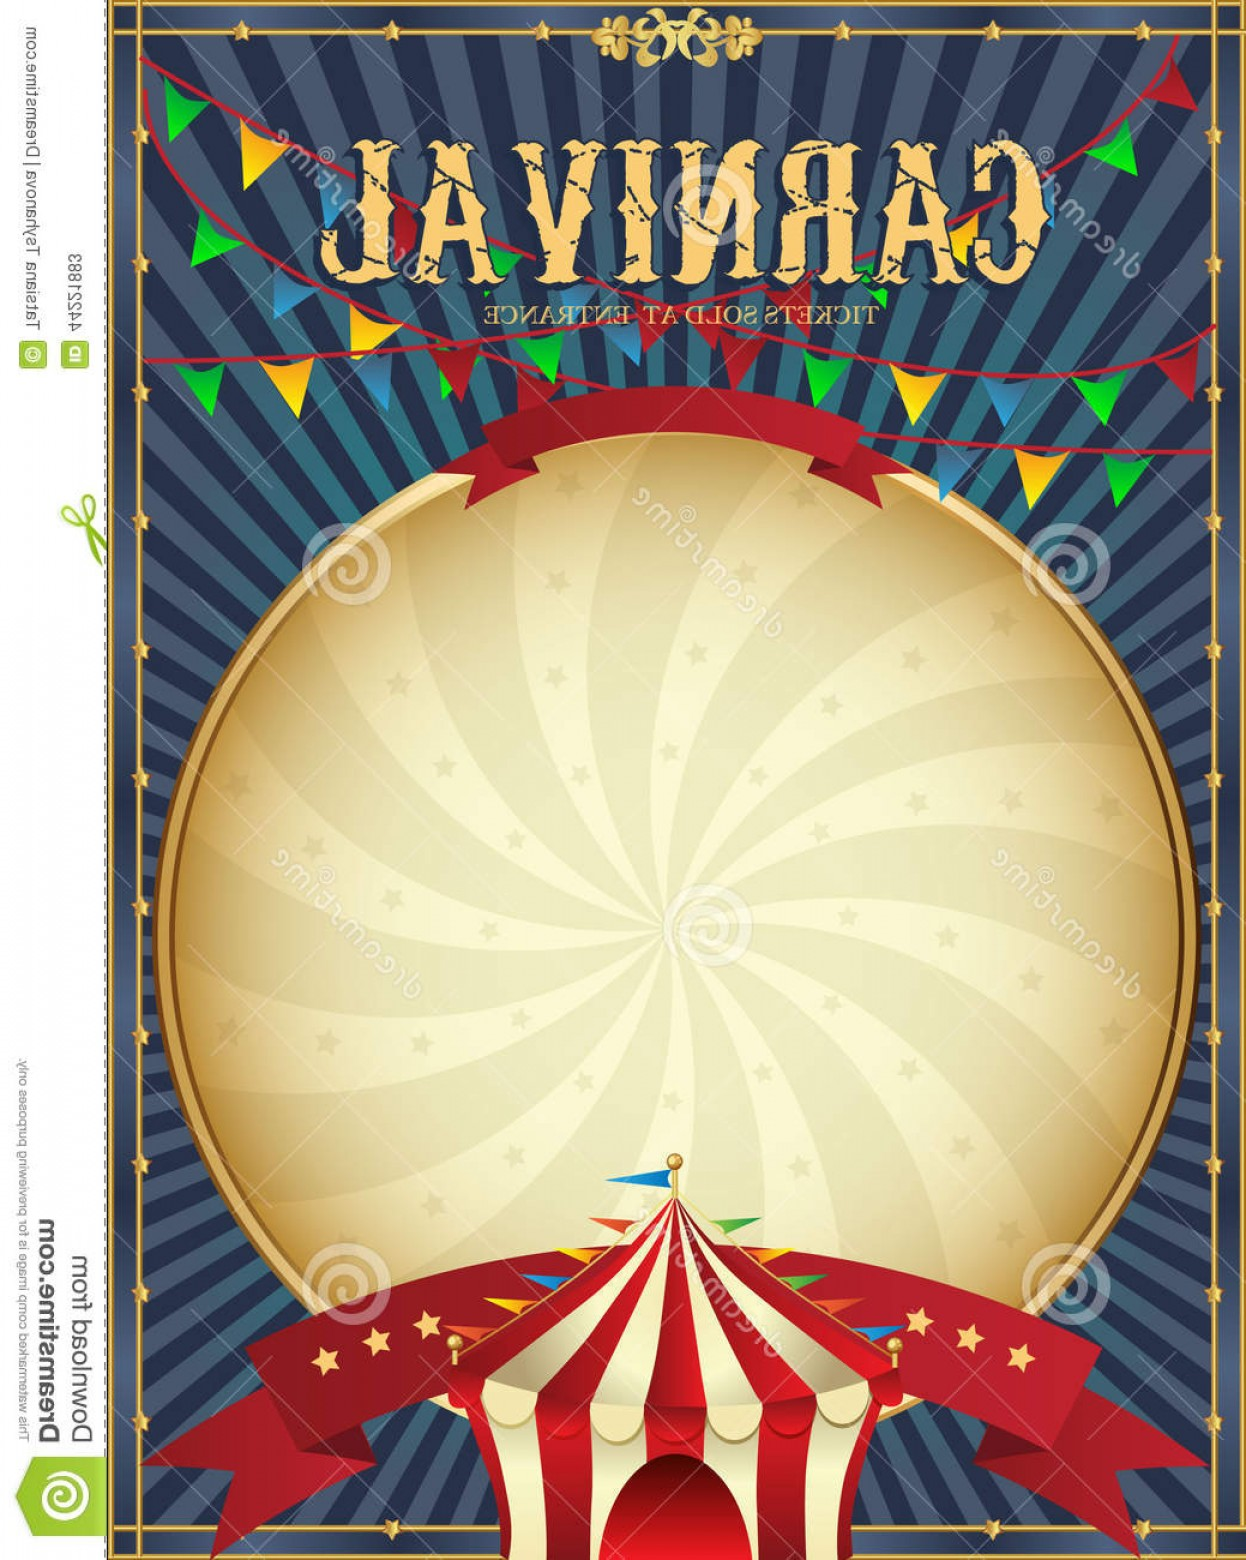 Circus Background Vector: Stock Illustration Vintage Carnival Circus Poster Template Vector Illustration Festive Background Style Hand Drawing Retro Card Image